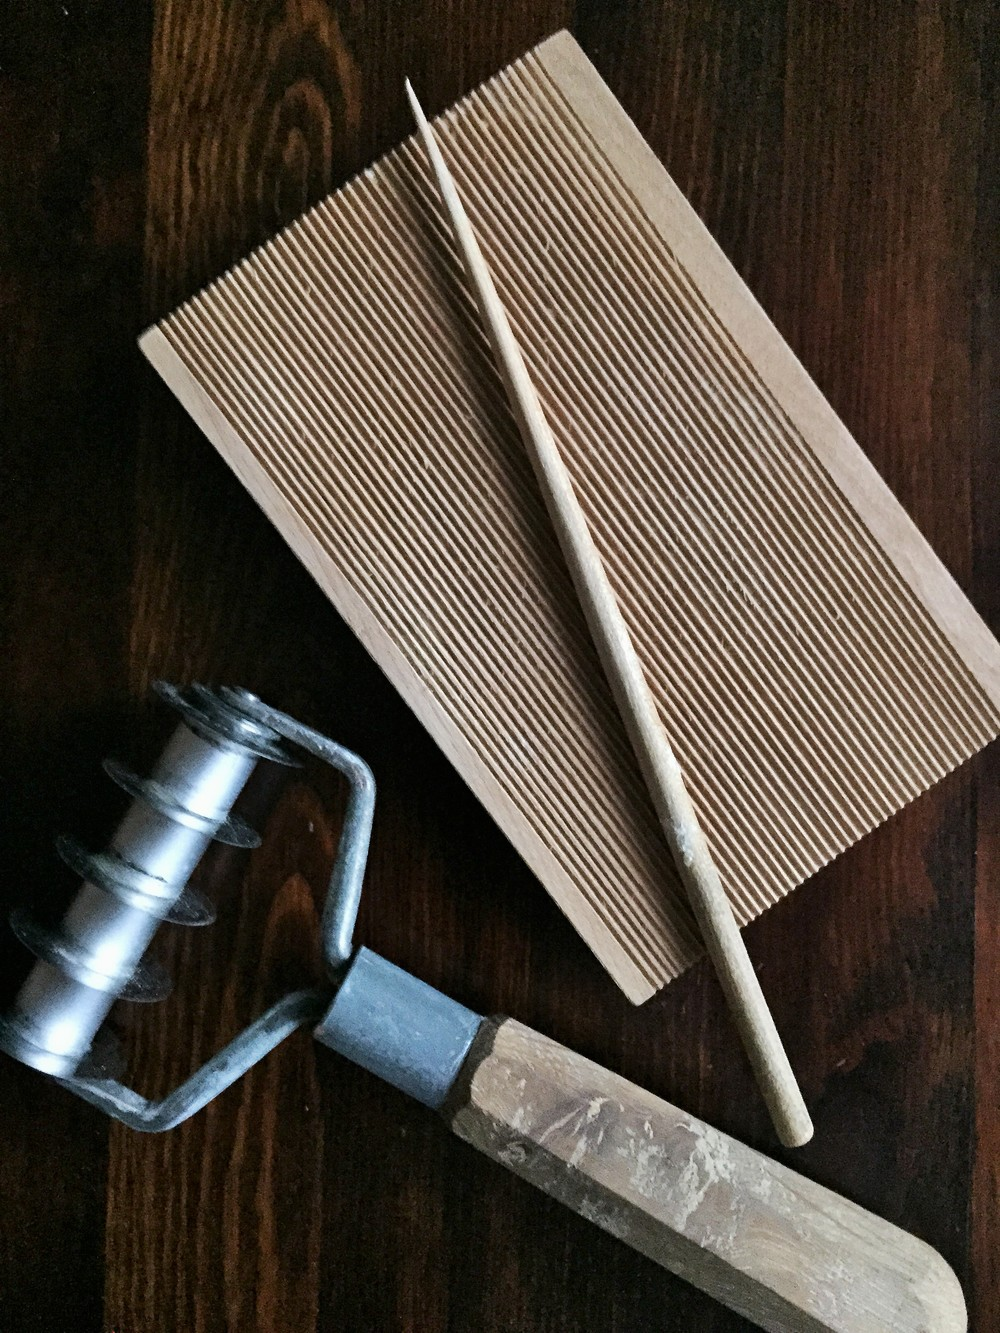 Home-made tools